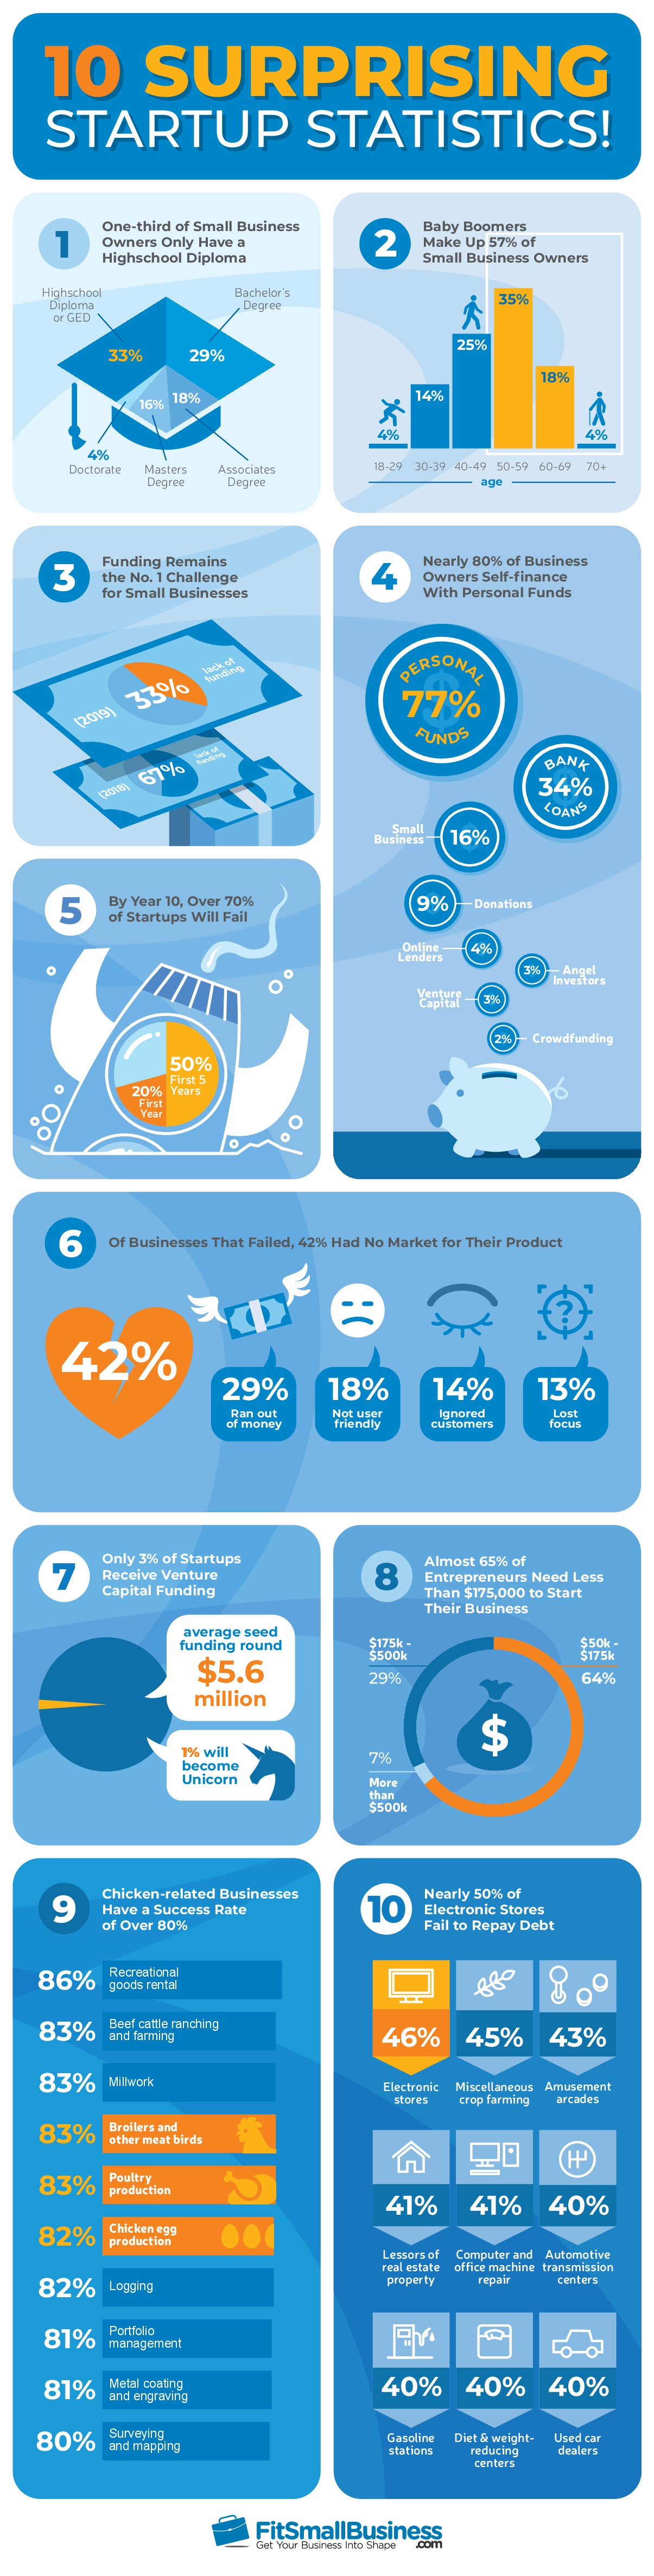 Fit Small Business infographic design